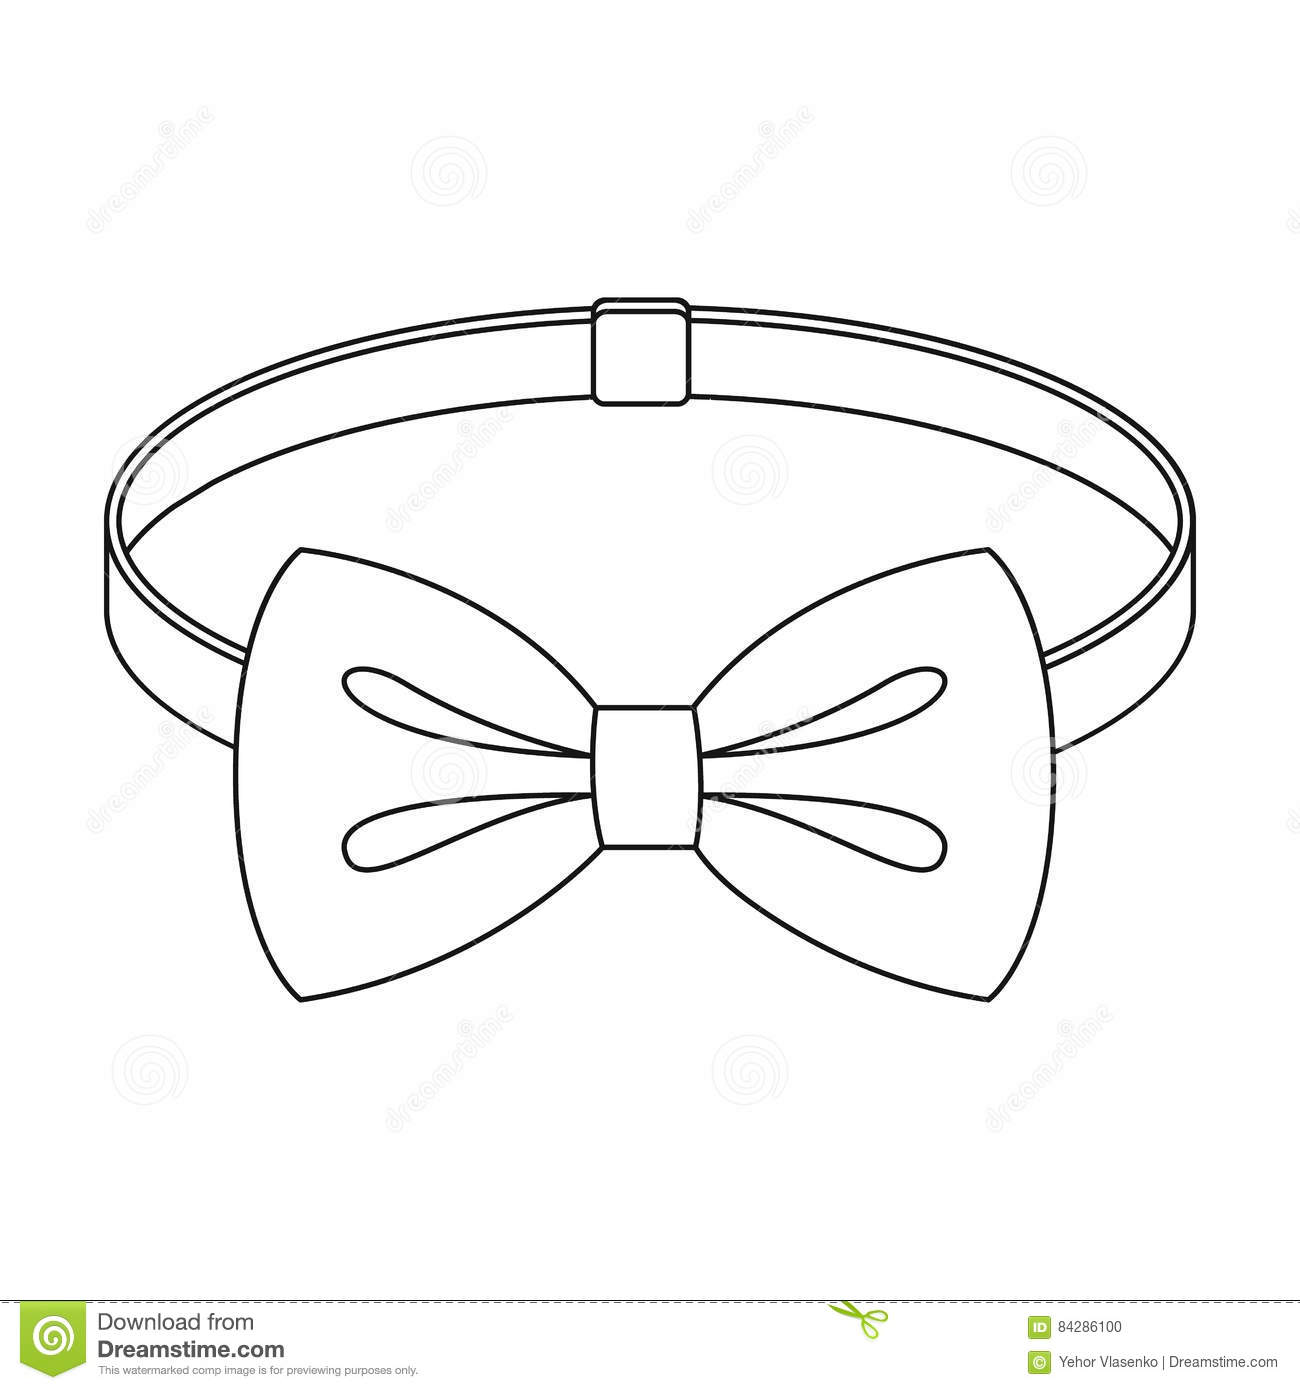 bow tie outline clipart - Clipground for Tie Clip Art Black And White  568zmd